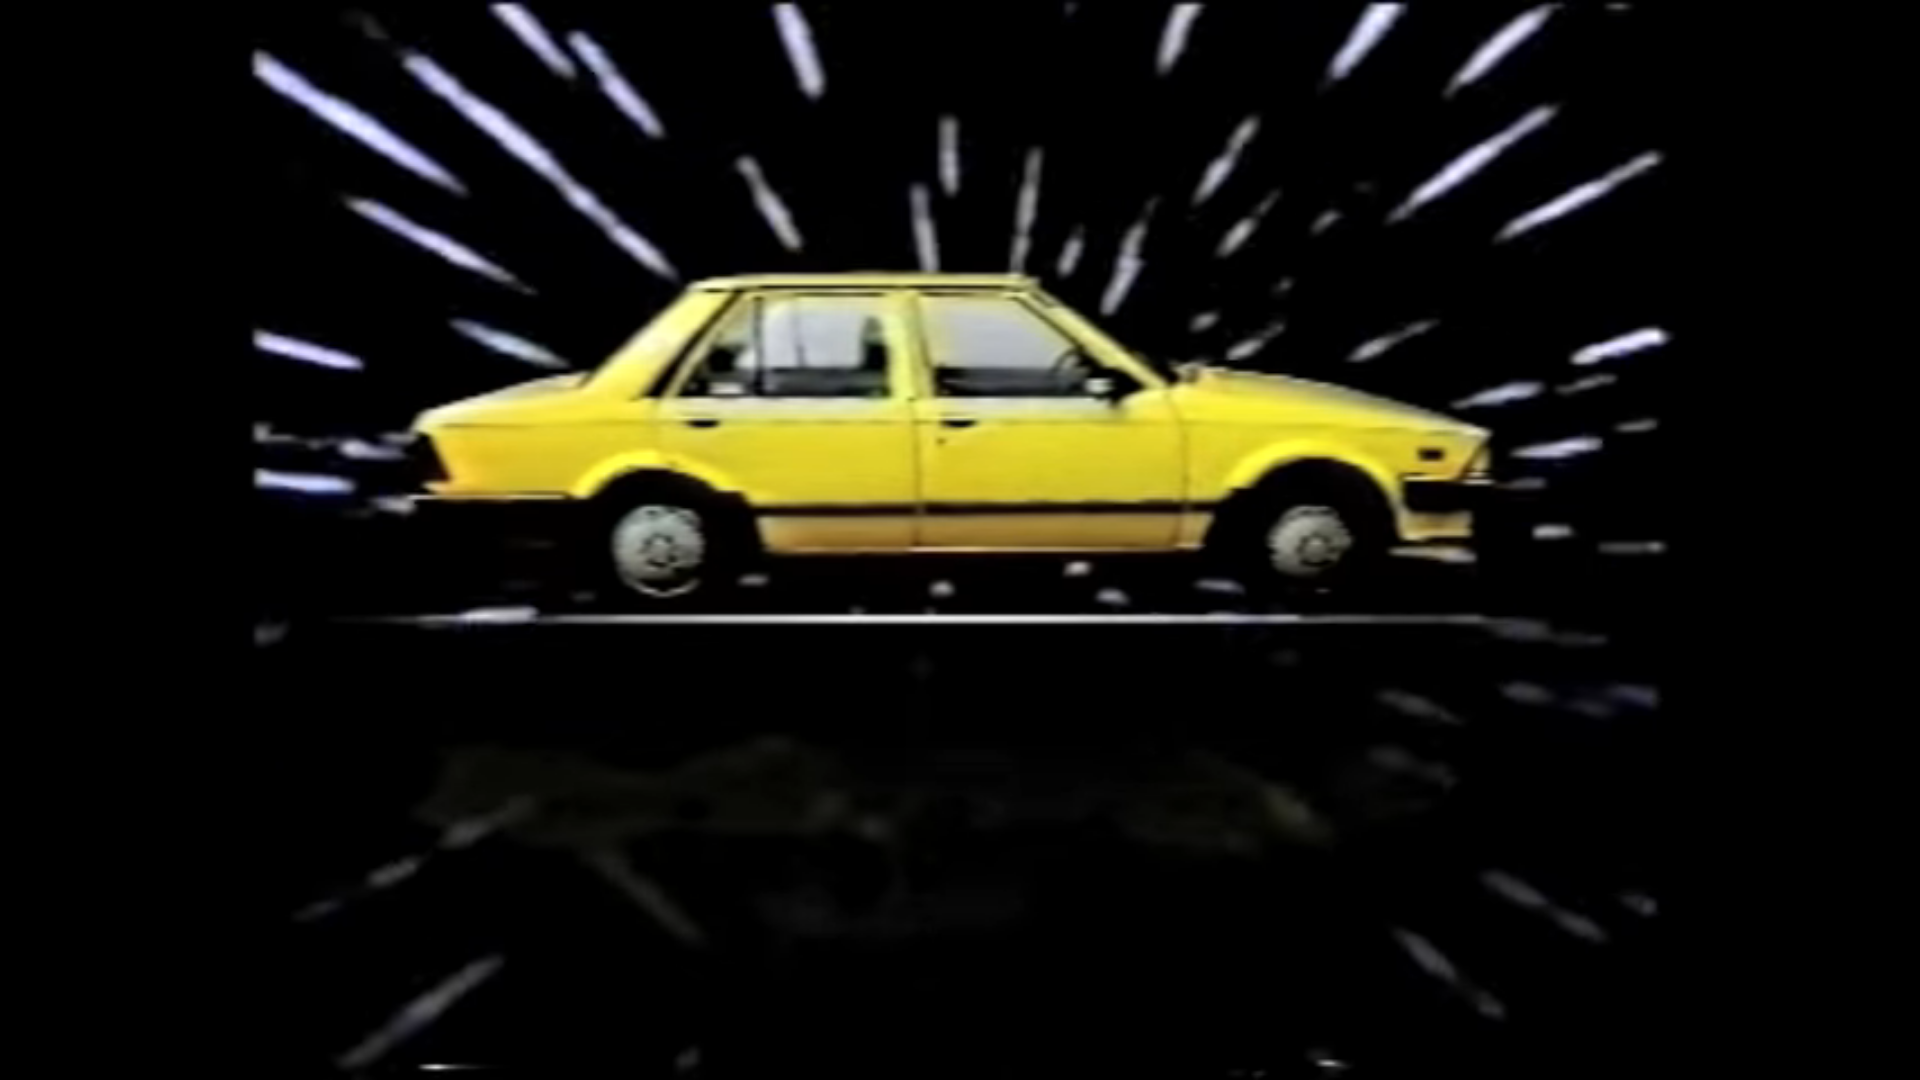 Best Car Commercials 2020 Rewind: The best car commercials of the '80s   ClassicCars.Journal